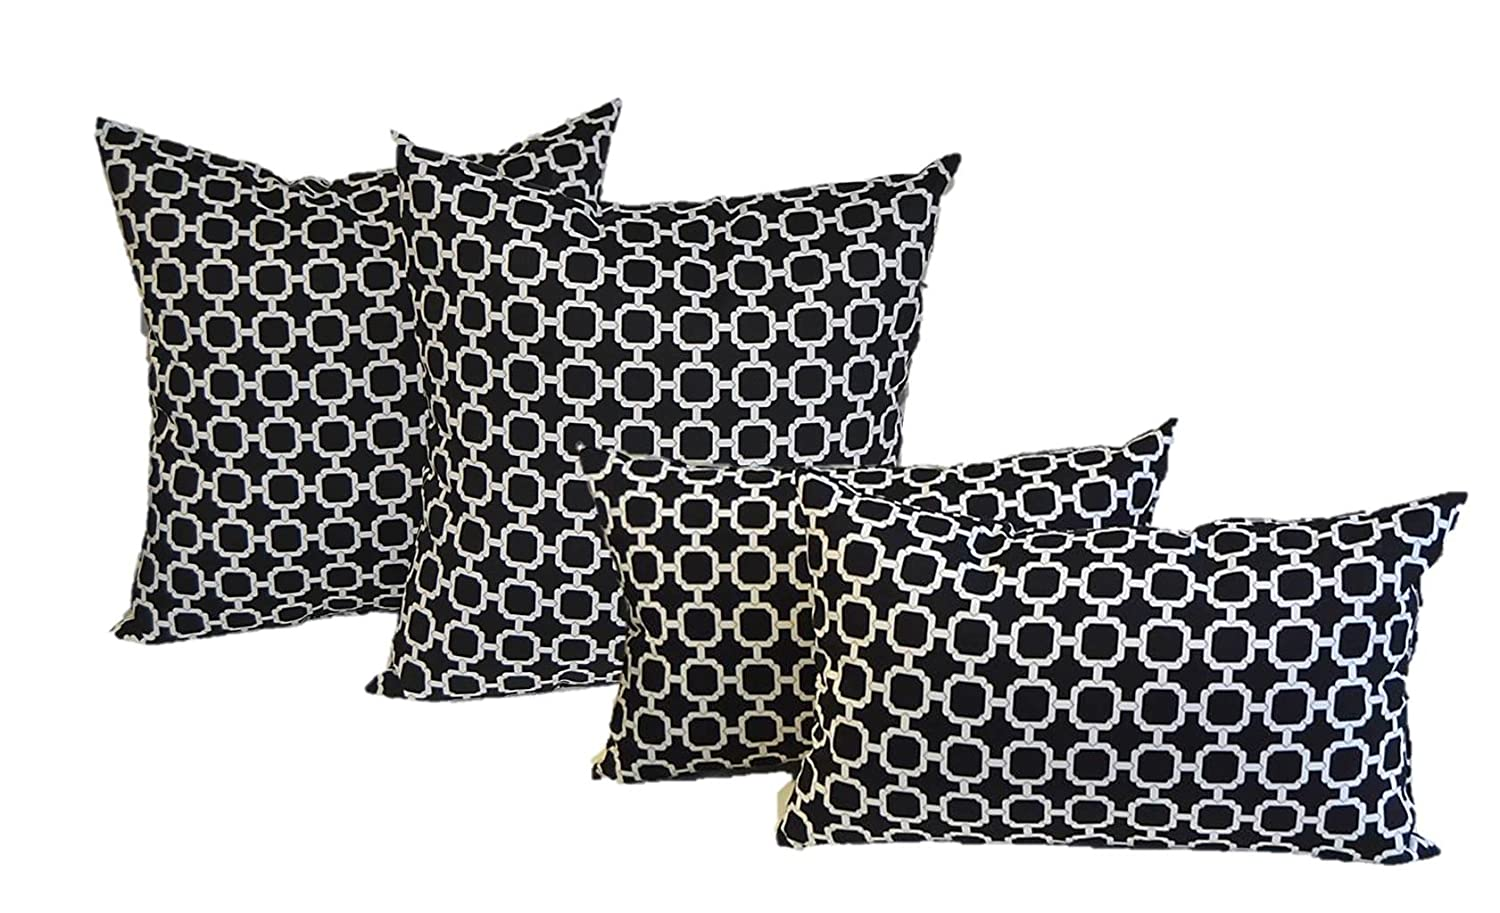 Resort Spa Home Set of 4 Indoor Outdoor Pillows – 20 Square Throw Pillows Rectangle Lumbar Decorative Throw Pillows – Black and White Geometric Hockley